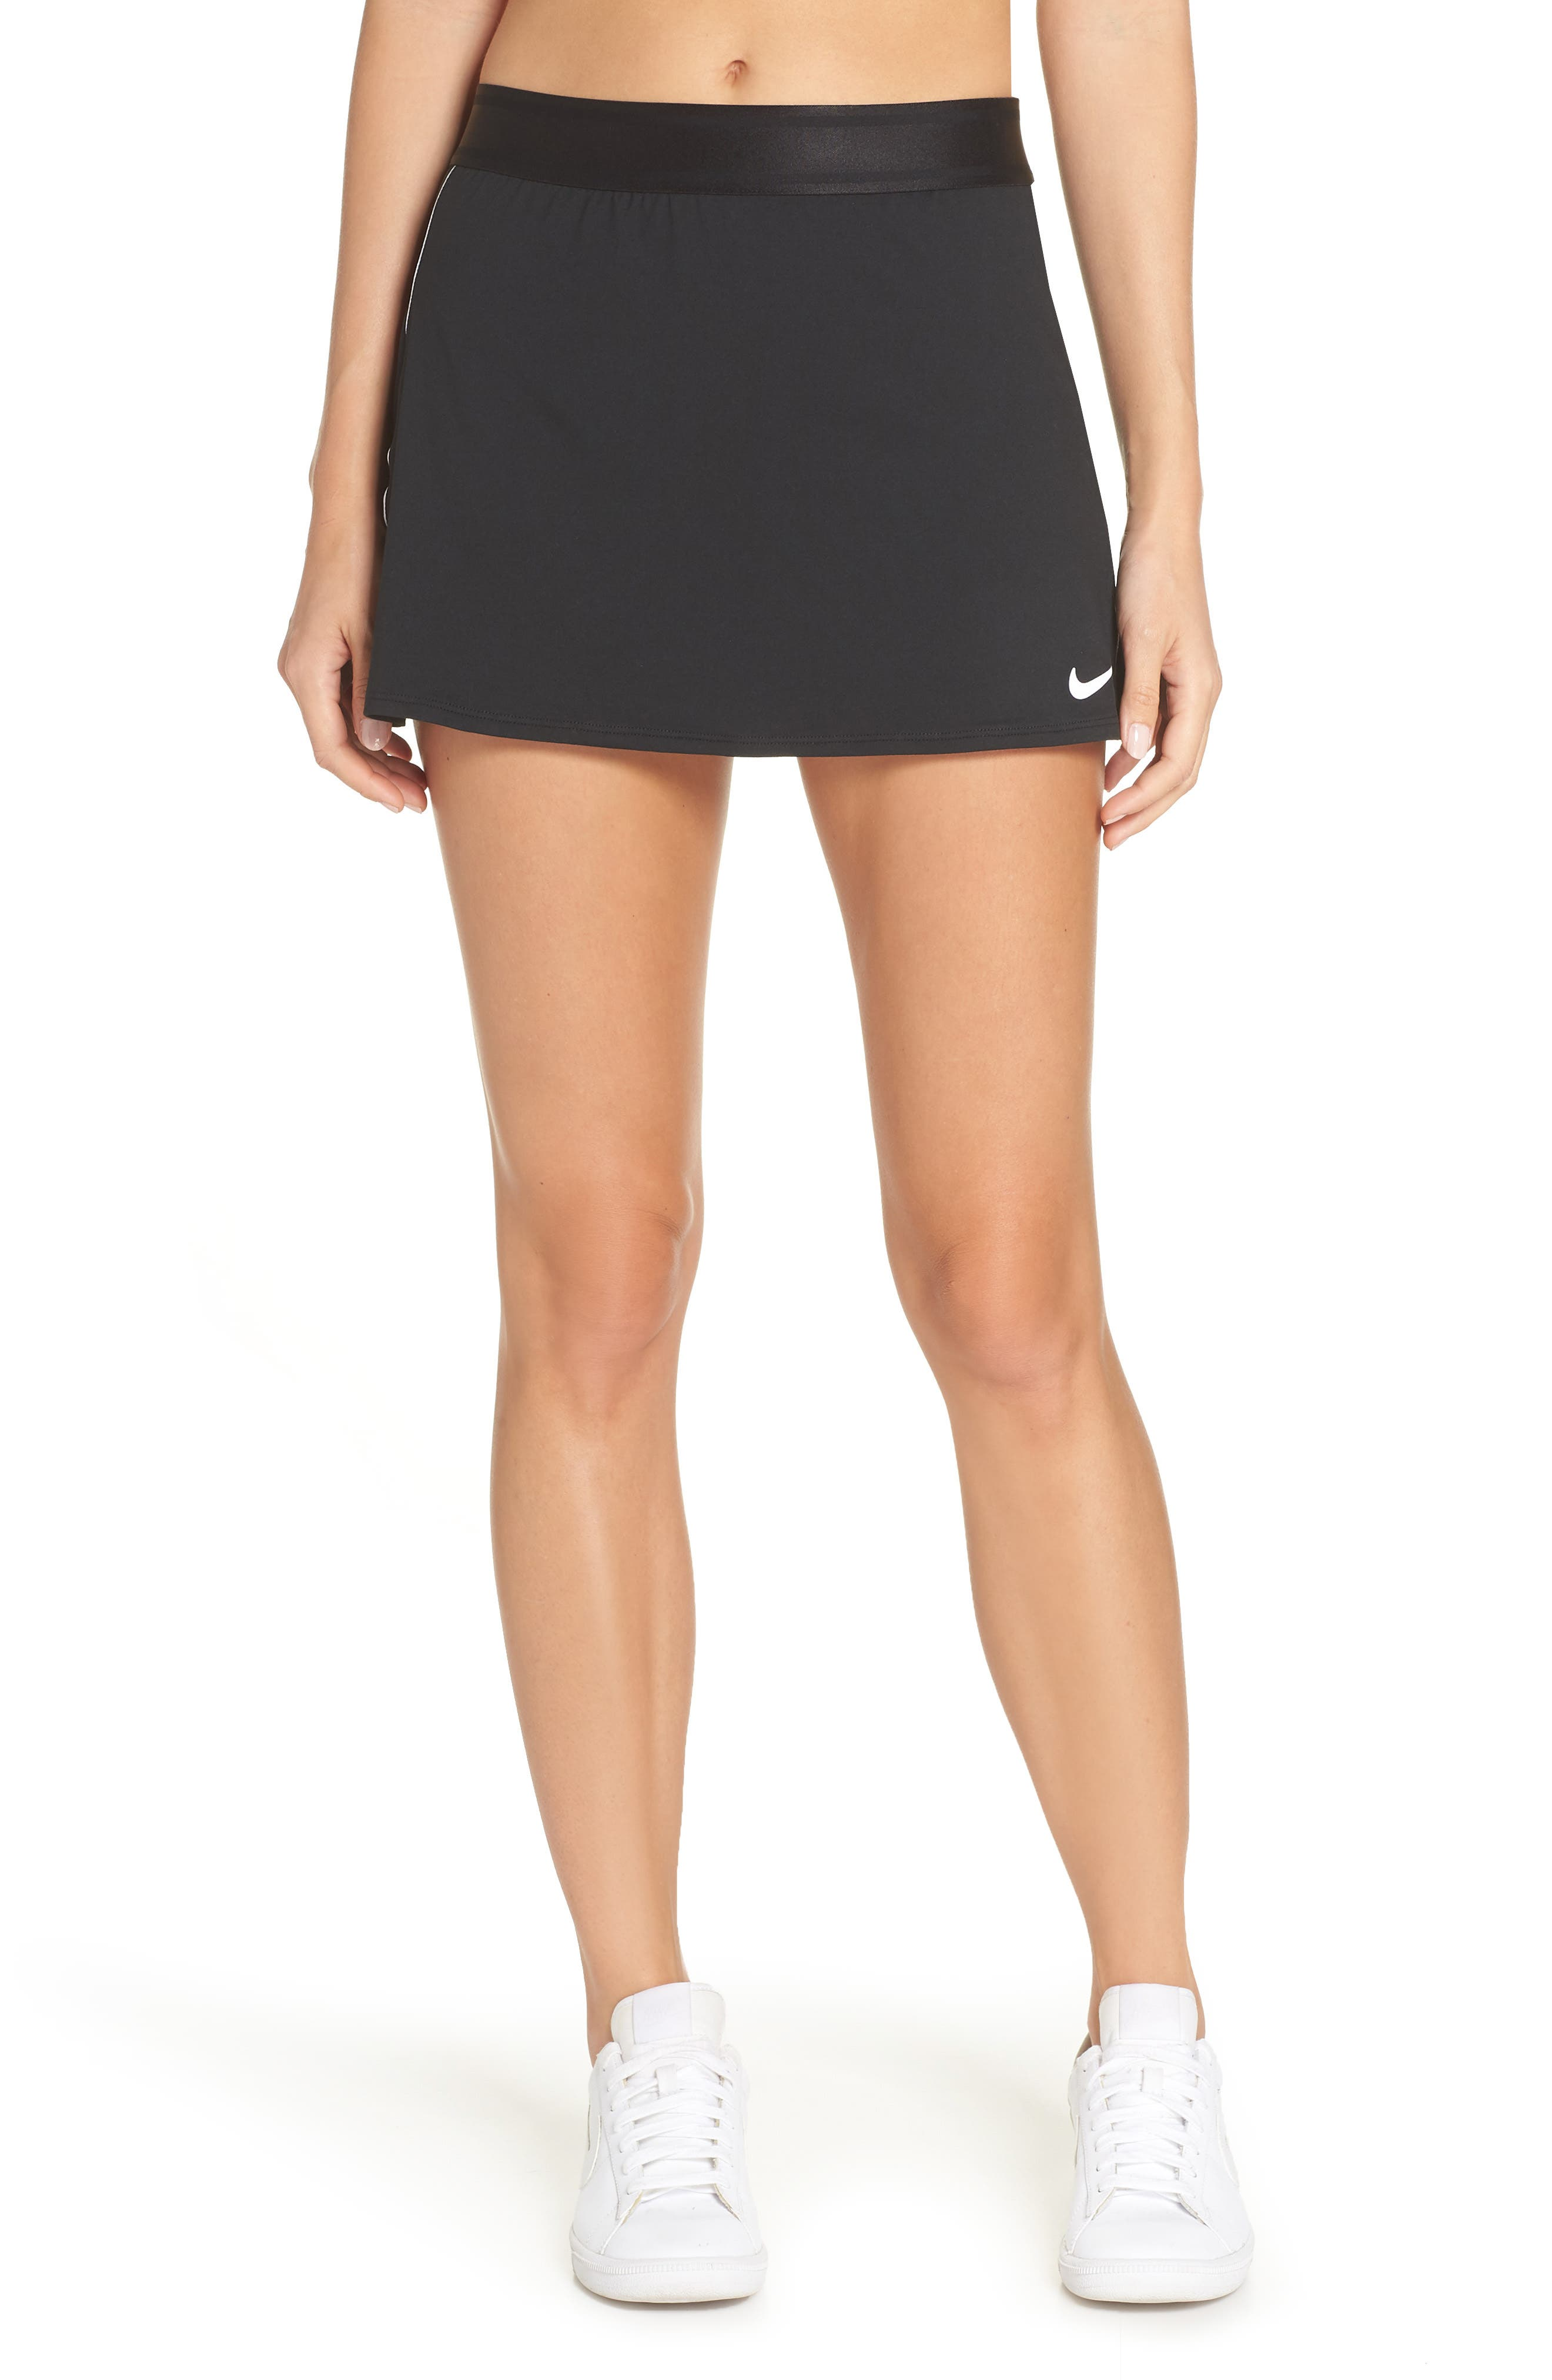 NIKE, Court Dry-FIT Tennis Skirt, Main thumbnail 1, color, BLACK/ WHITE/ WHITE/ BLACK